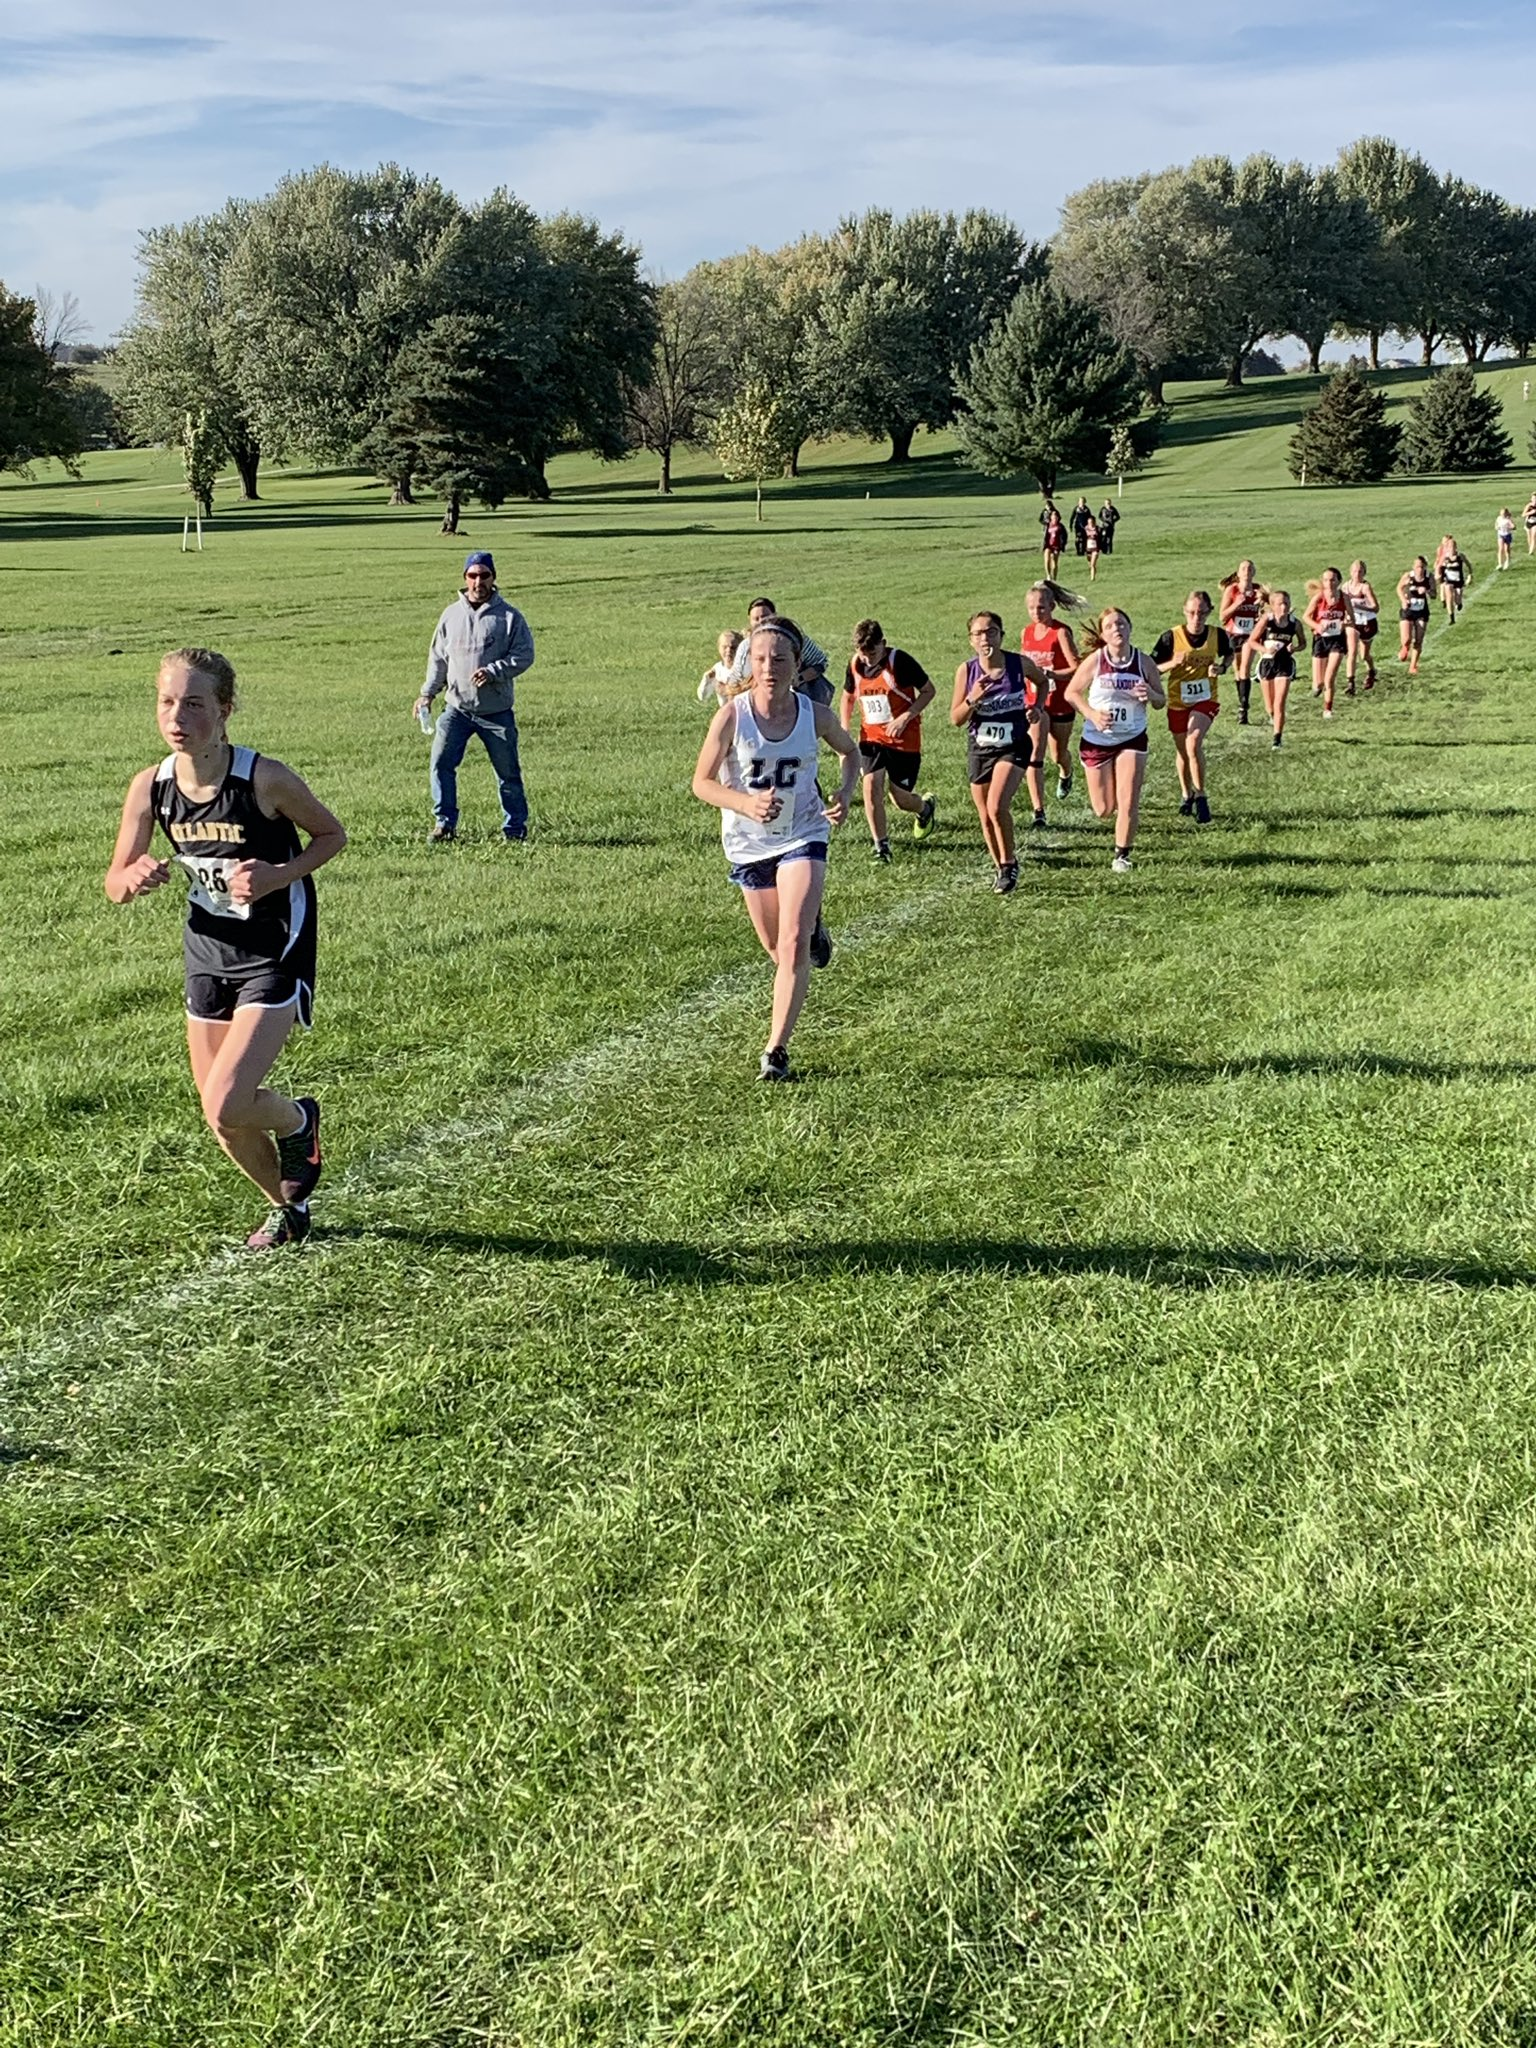 Congrats to the MS Boys and Girls XC teams. Boys repeated as conference champs and girls were runner ups. https://t.co/JsgUBqioza